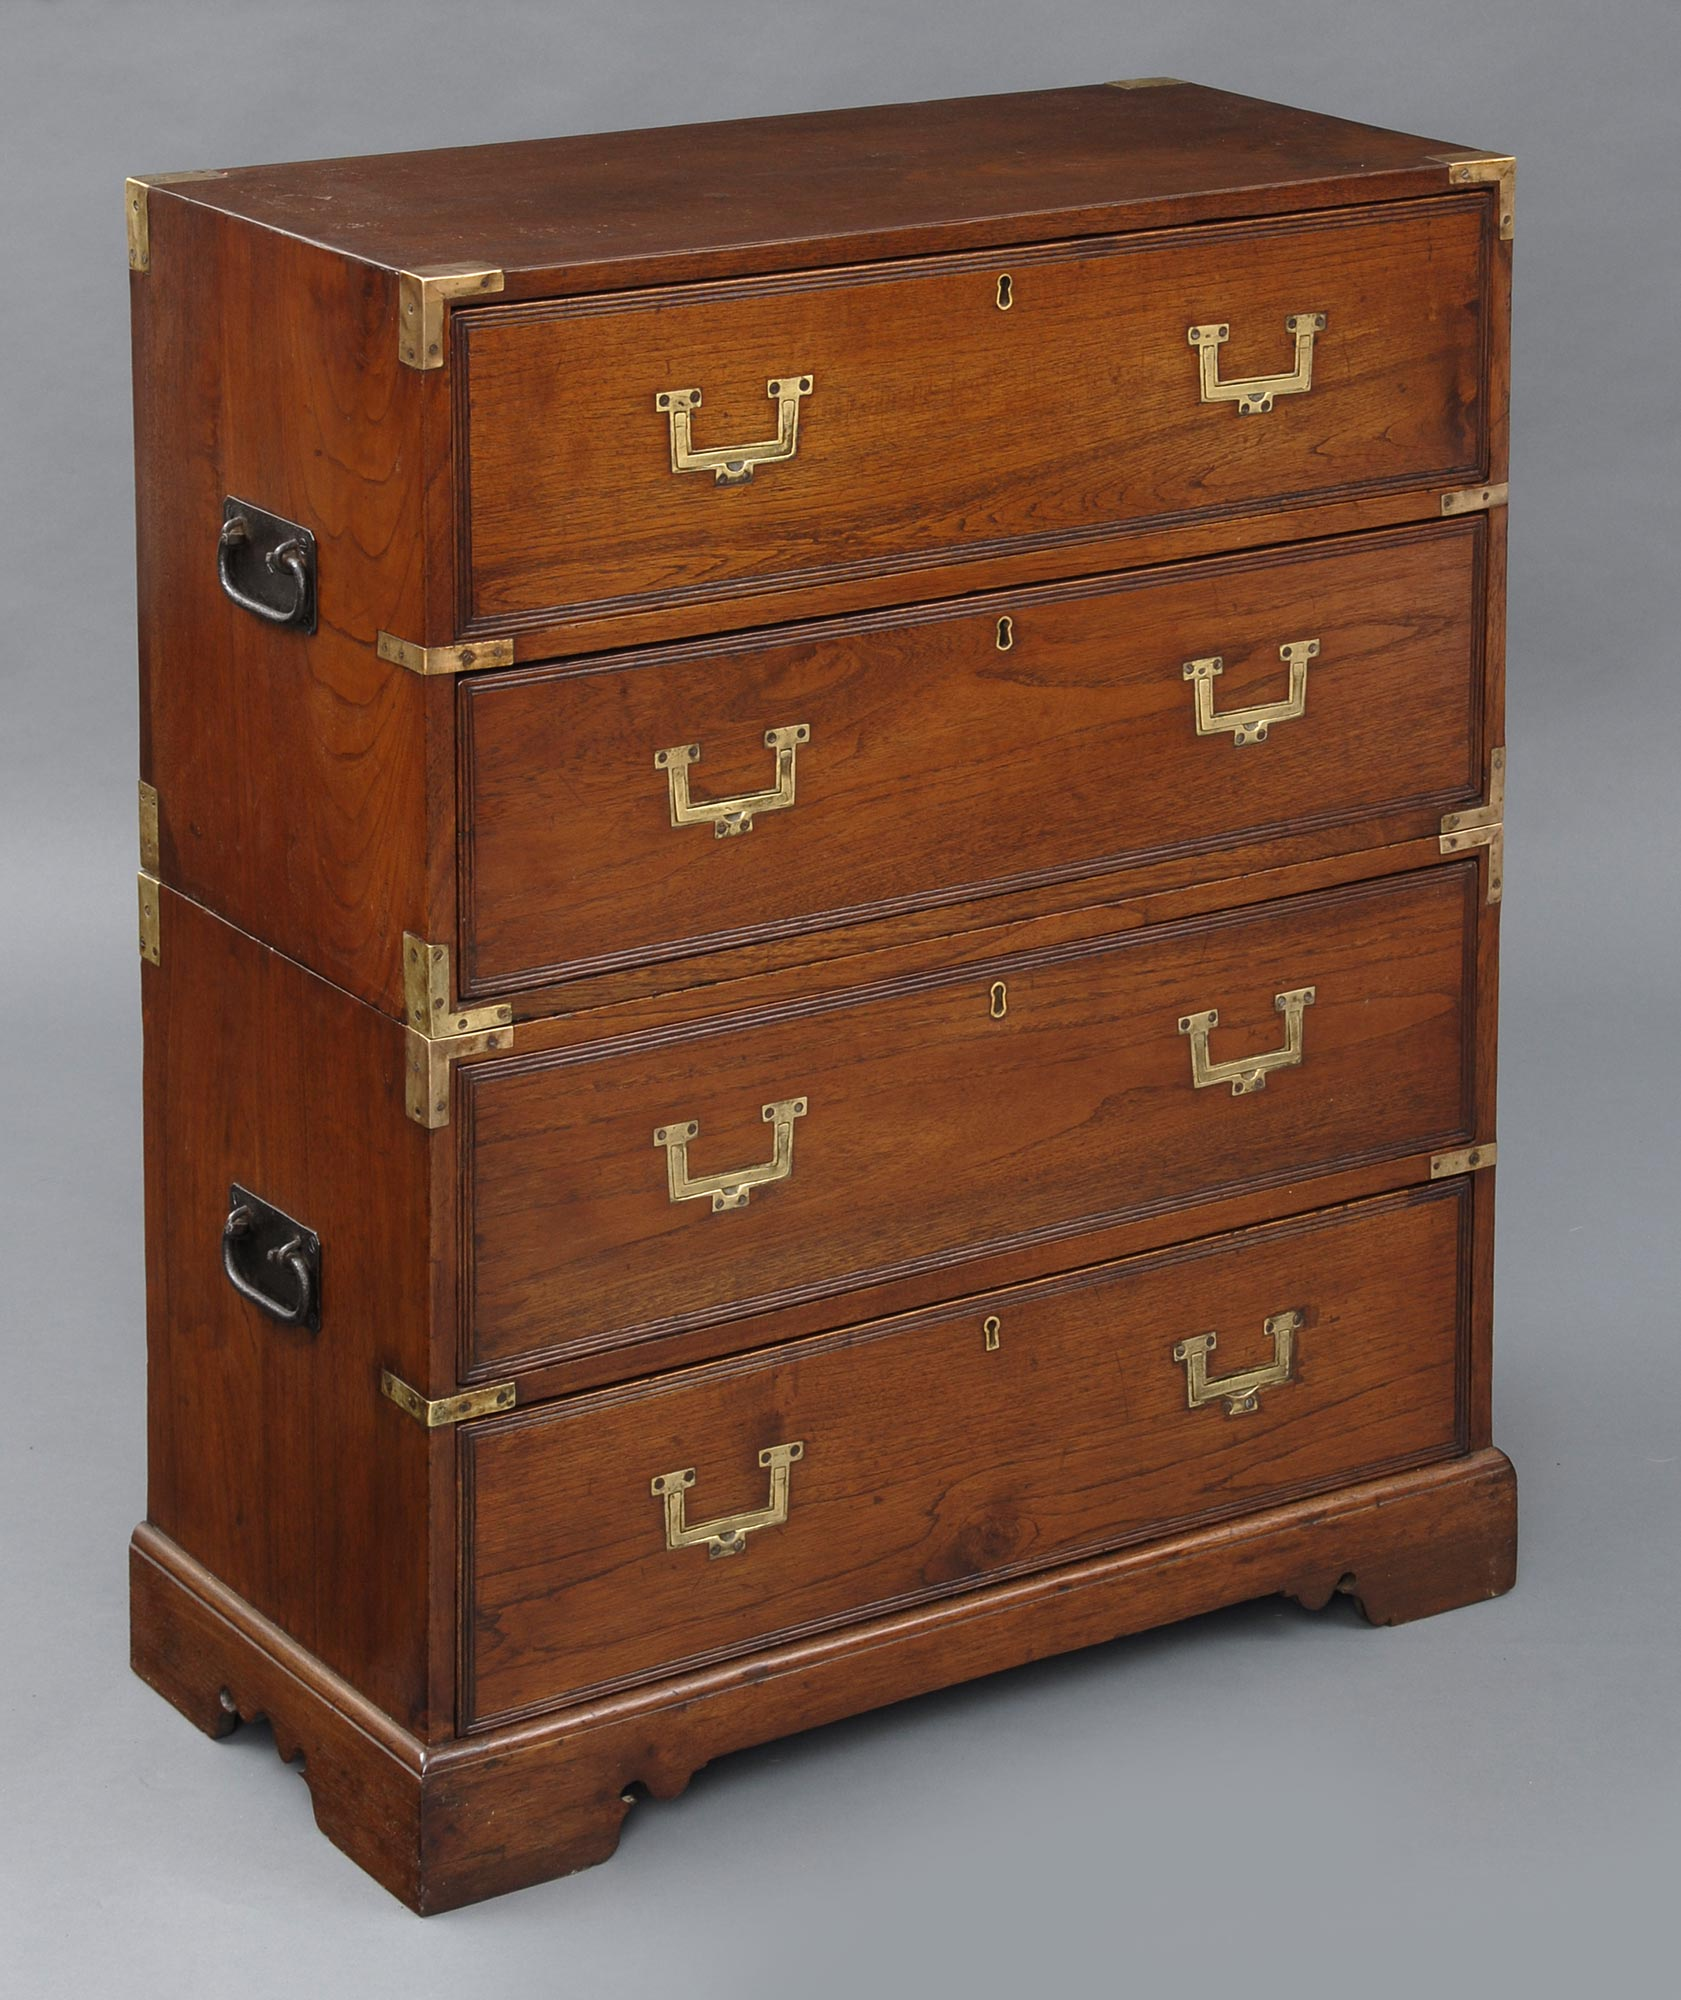 187 Product 187 Anglo Indian Campaign Chest